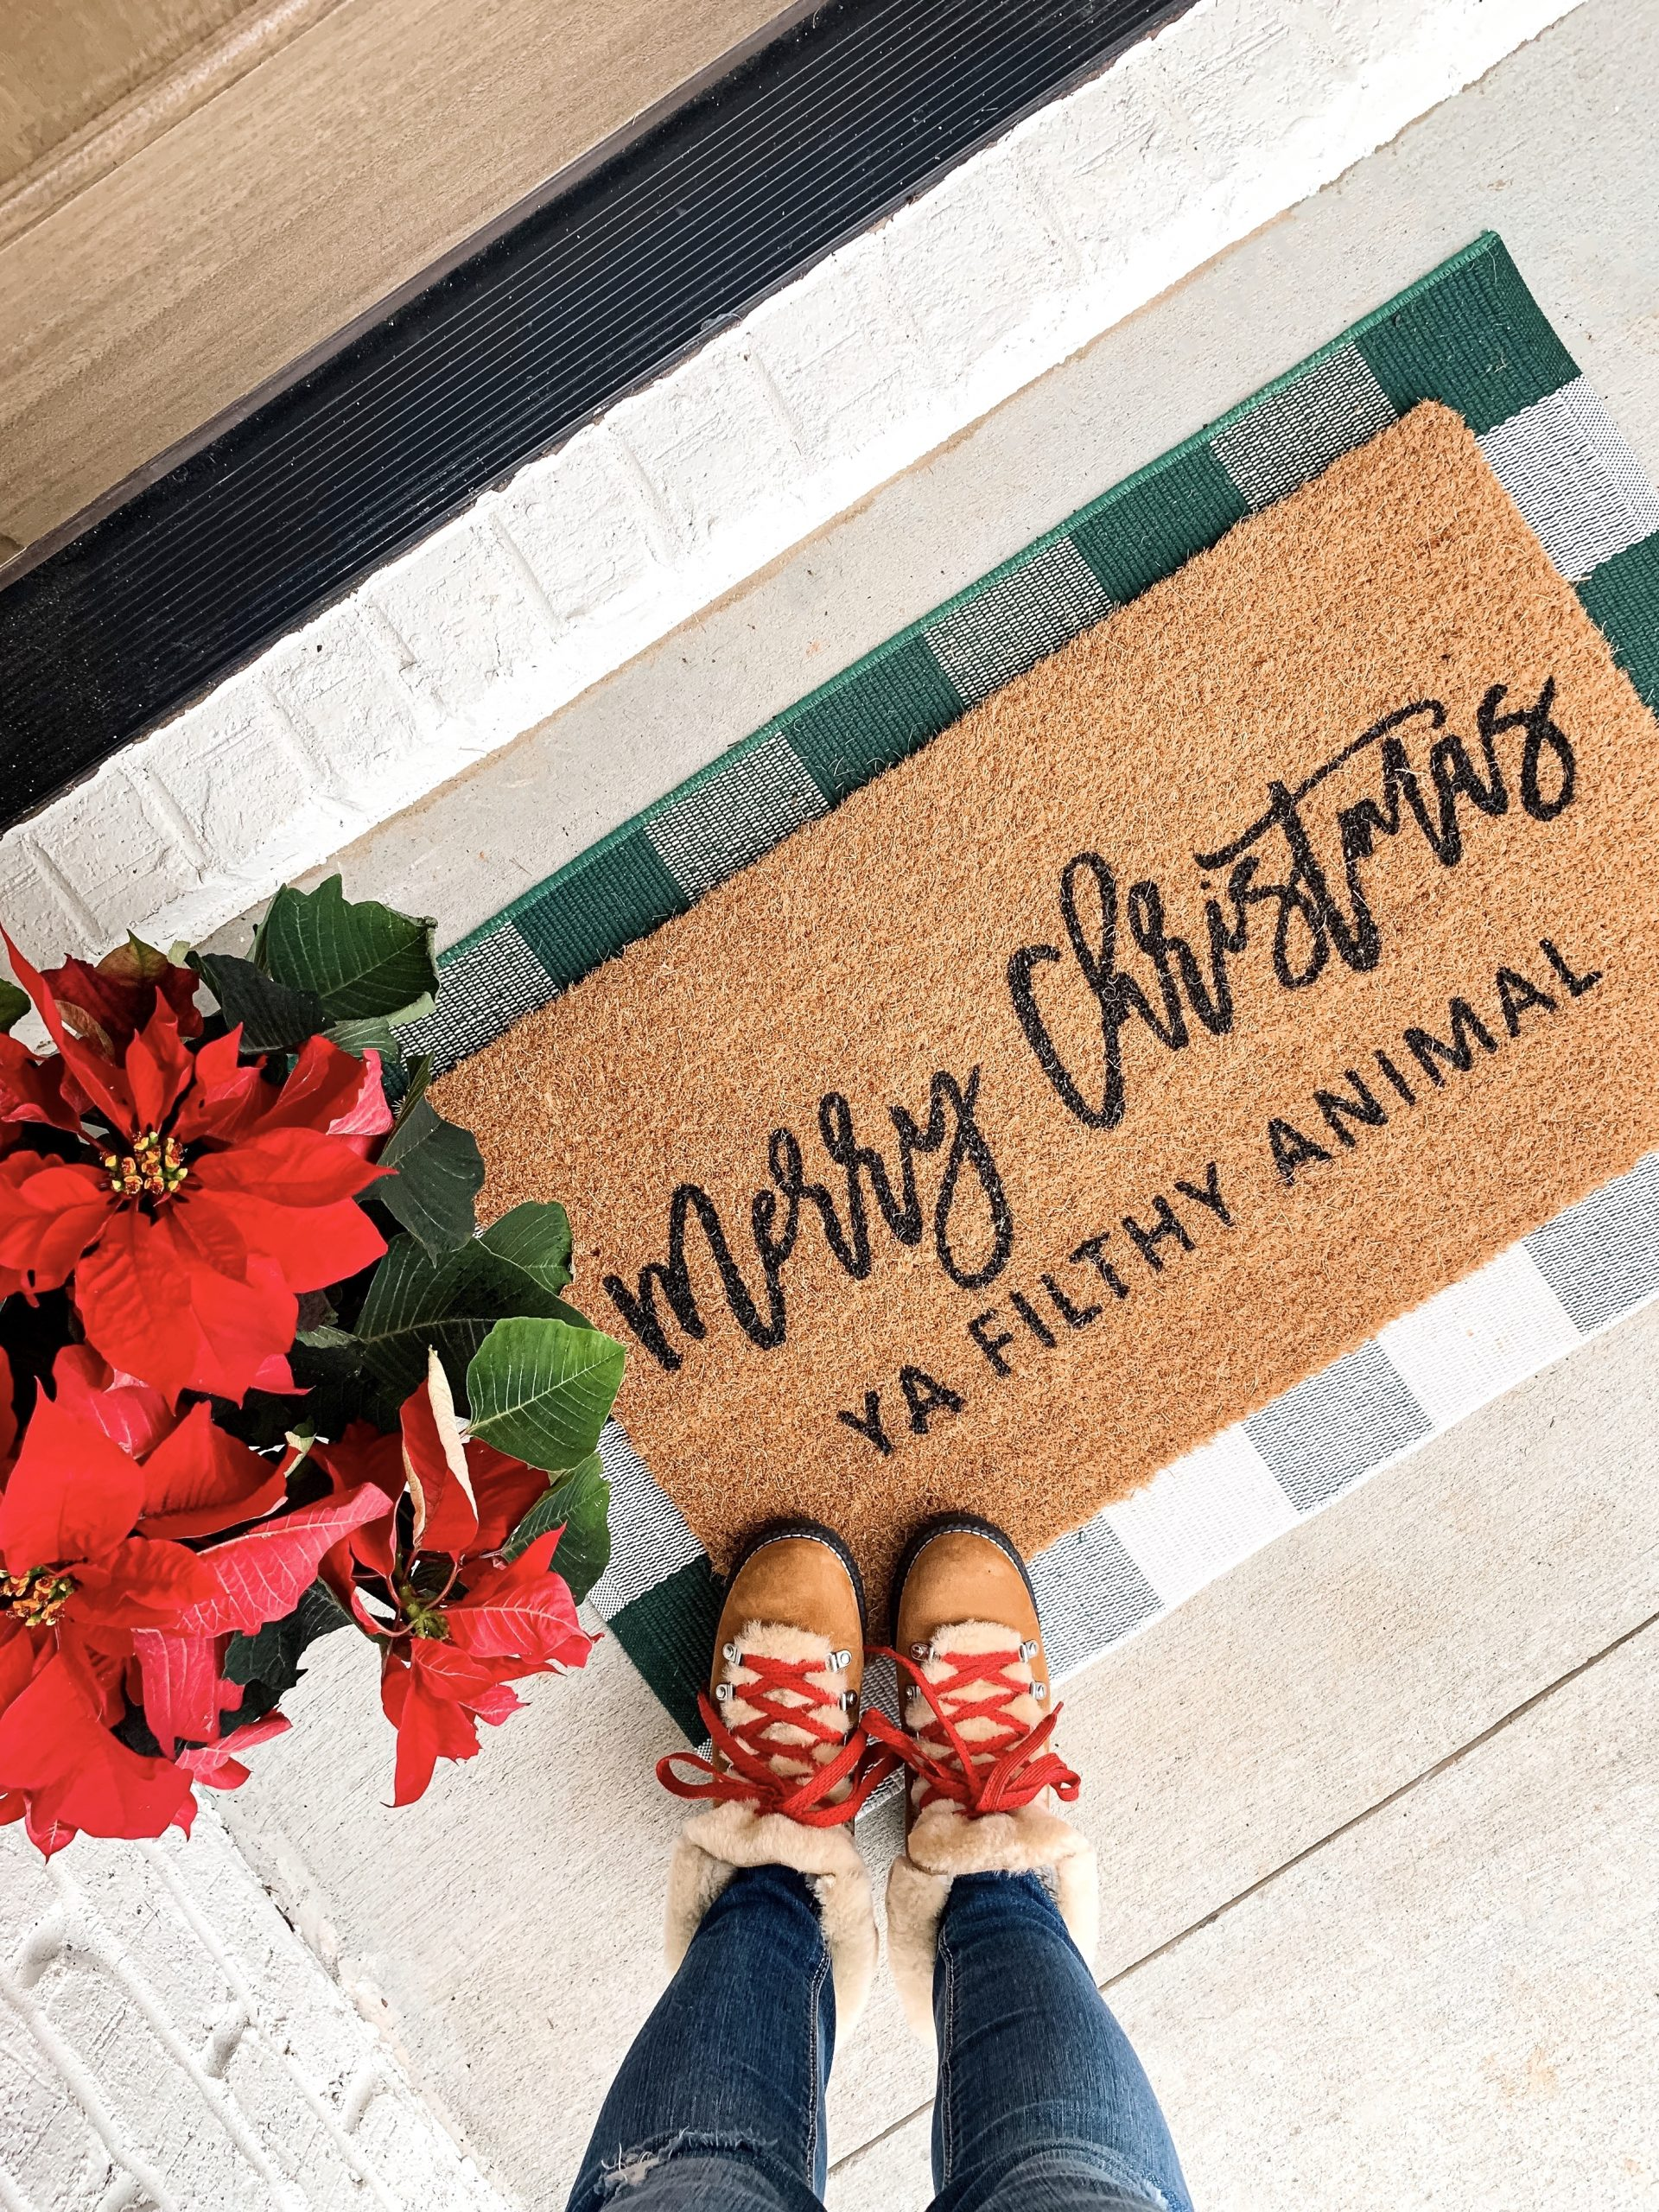 merry christmas ya filthy animal doormat, Christmas doormat